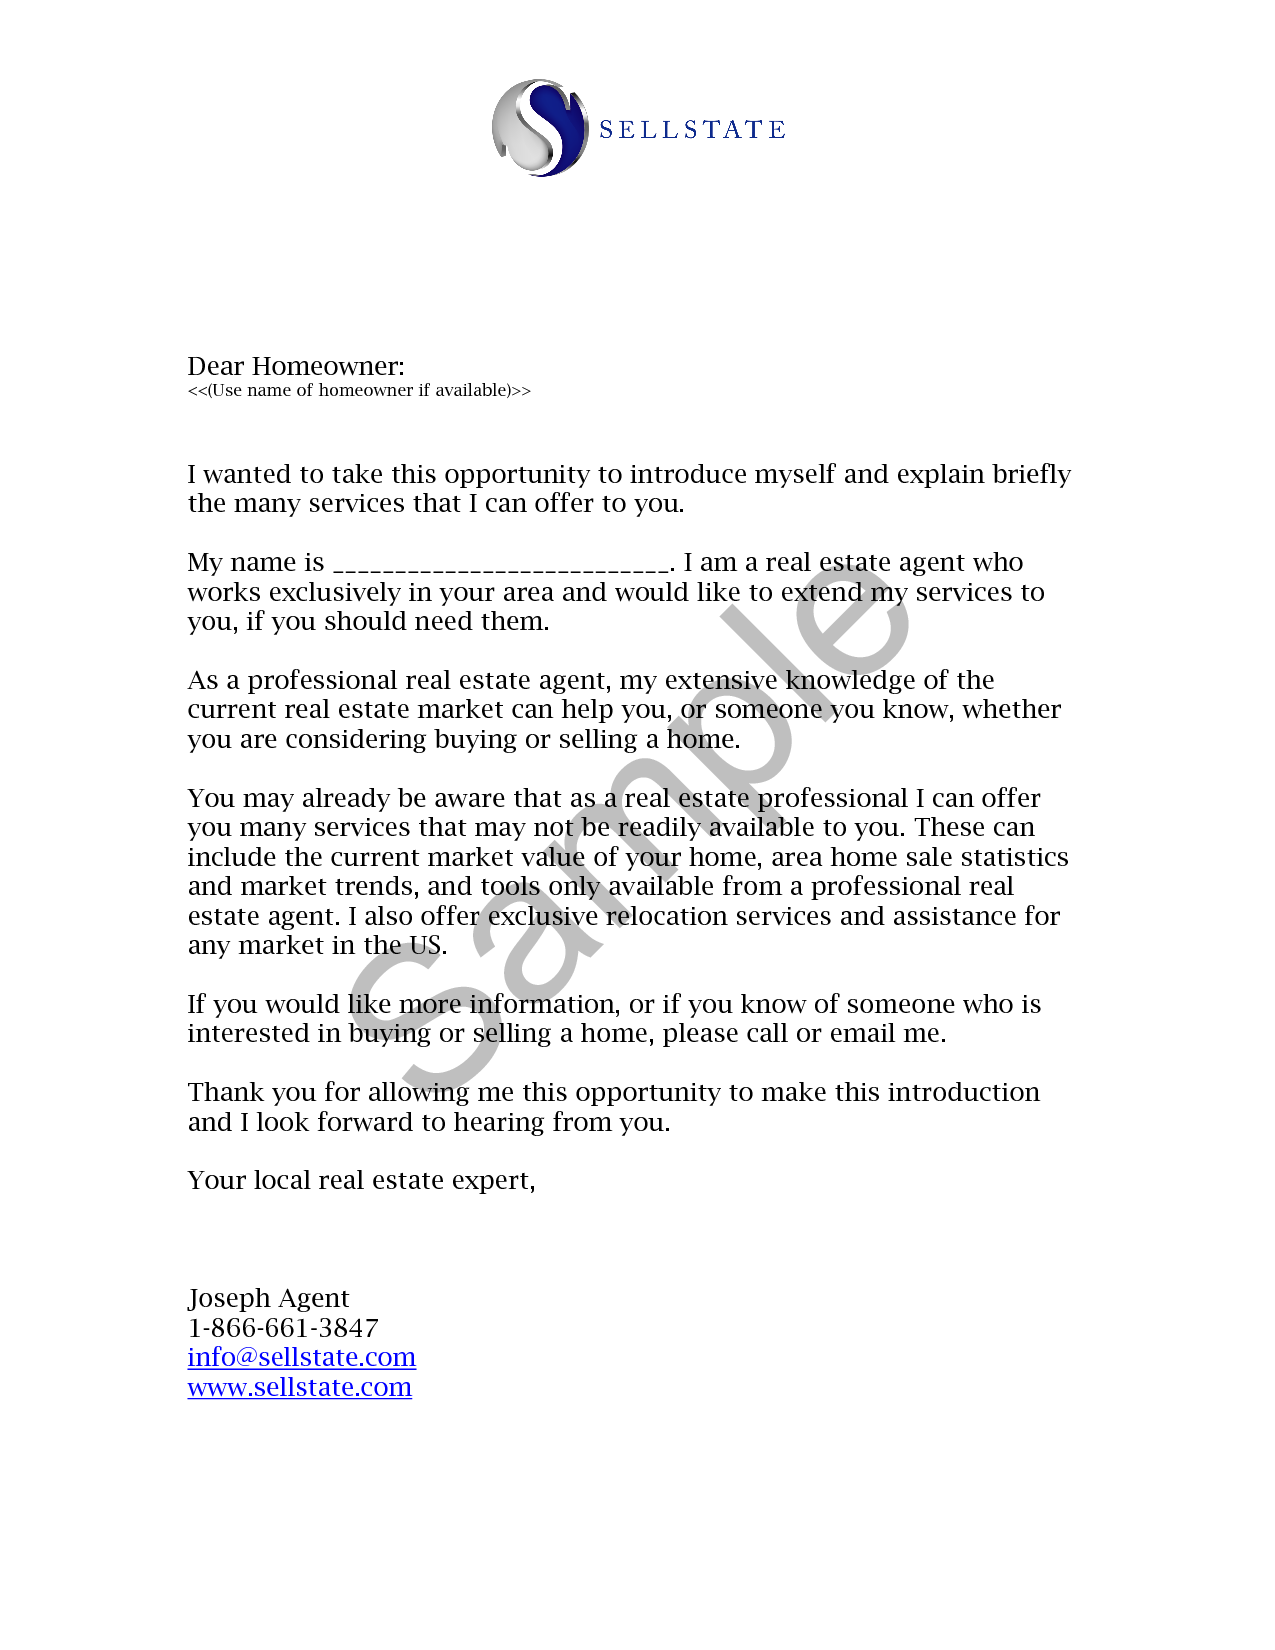 Real Estate Letters of Introduction Introduction Letter Real Estate ...